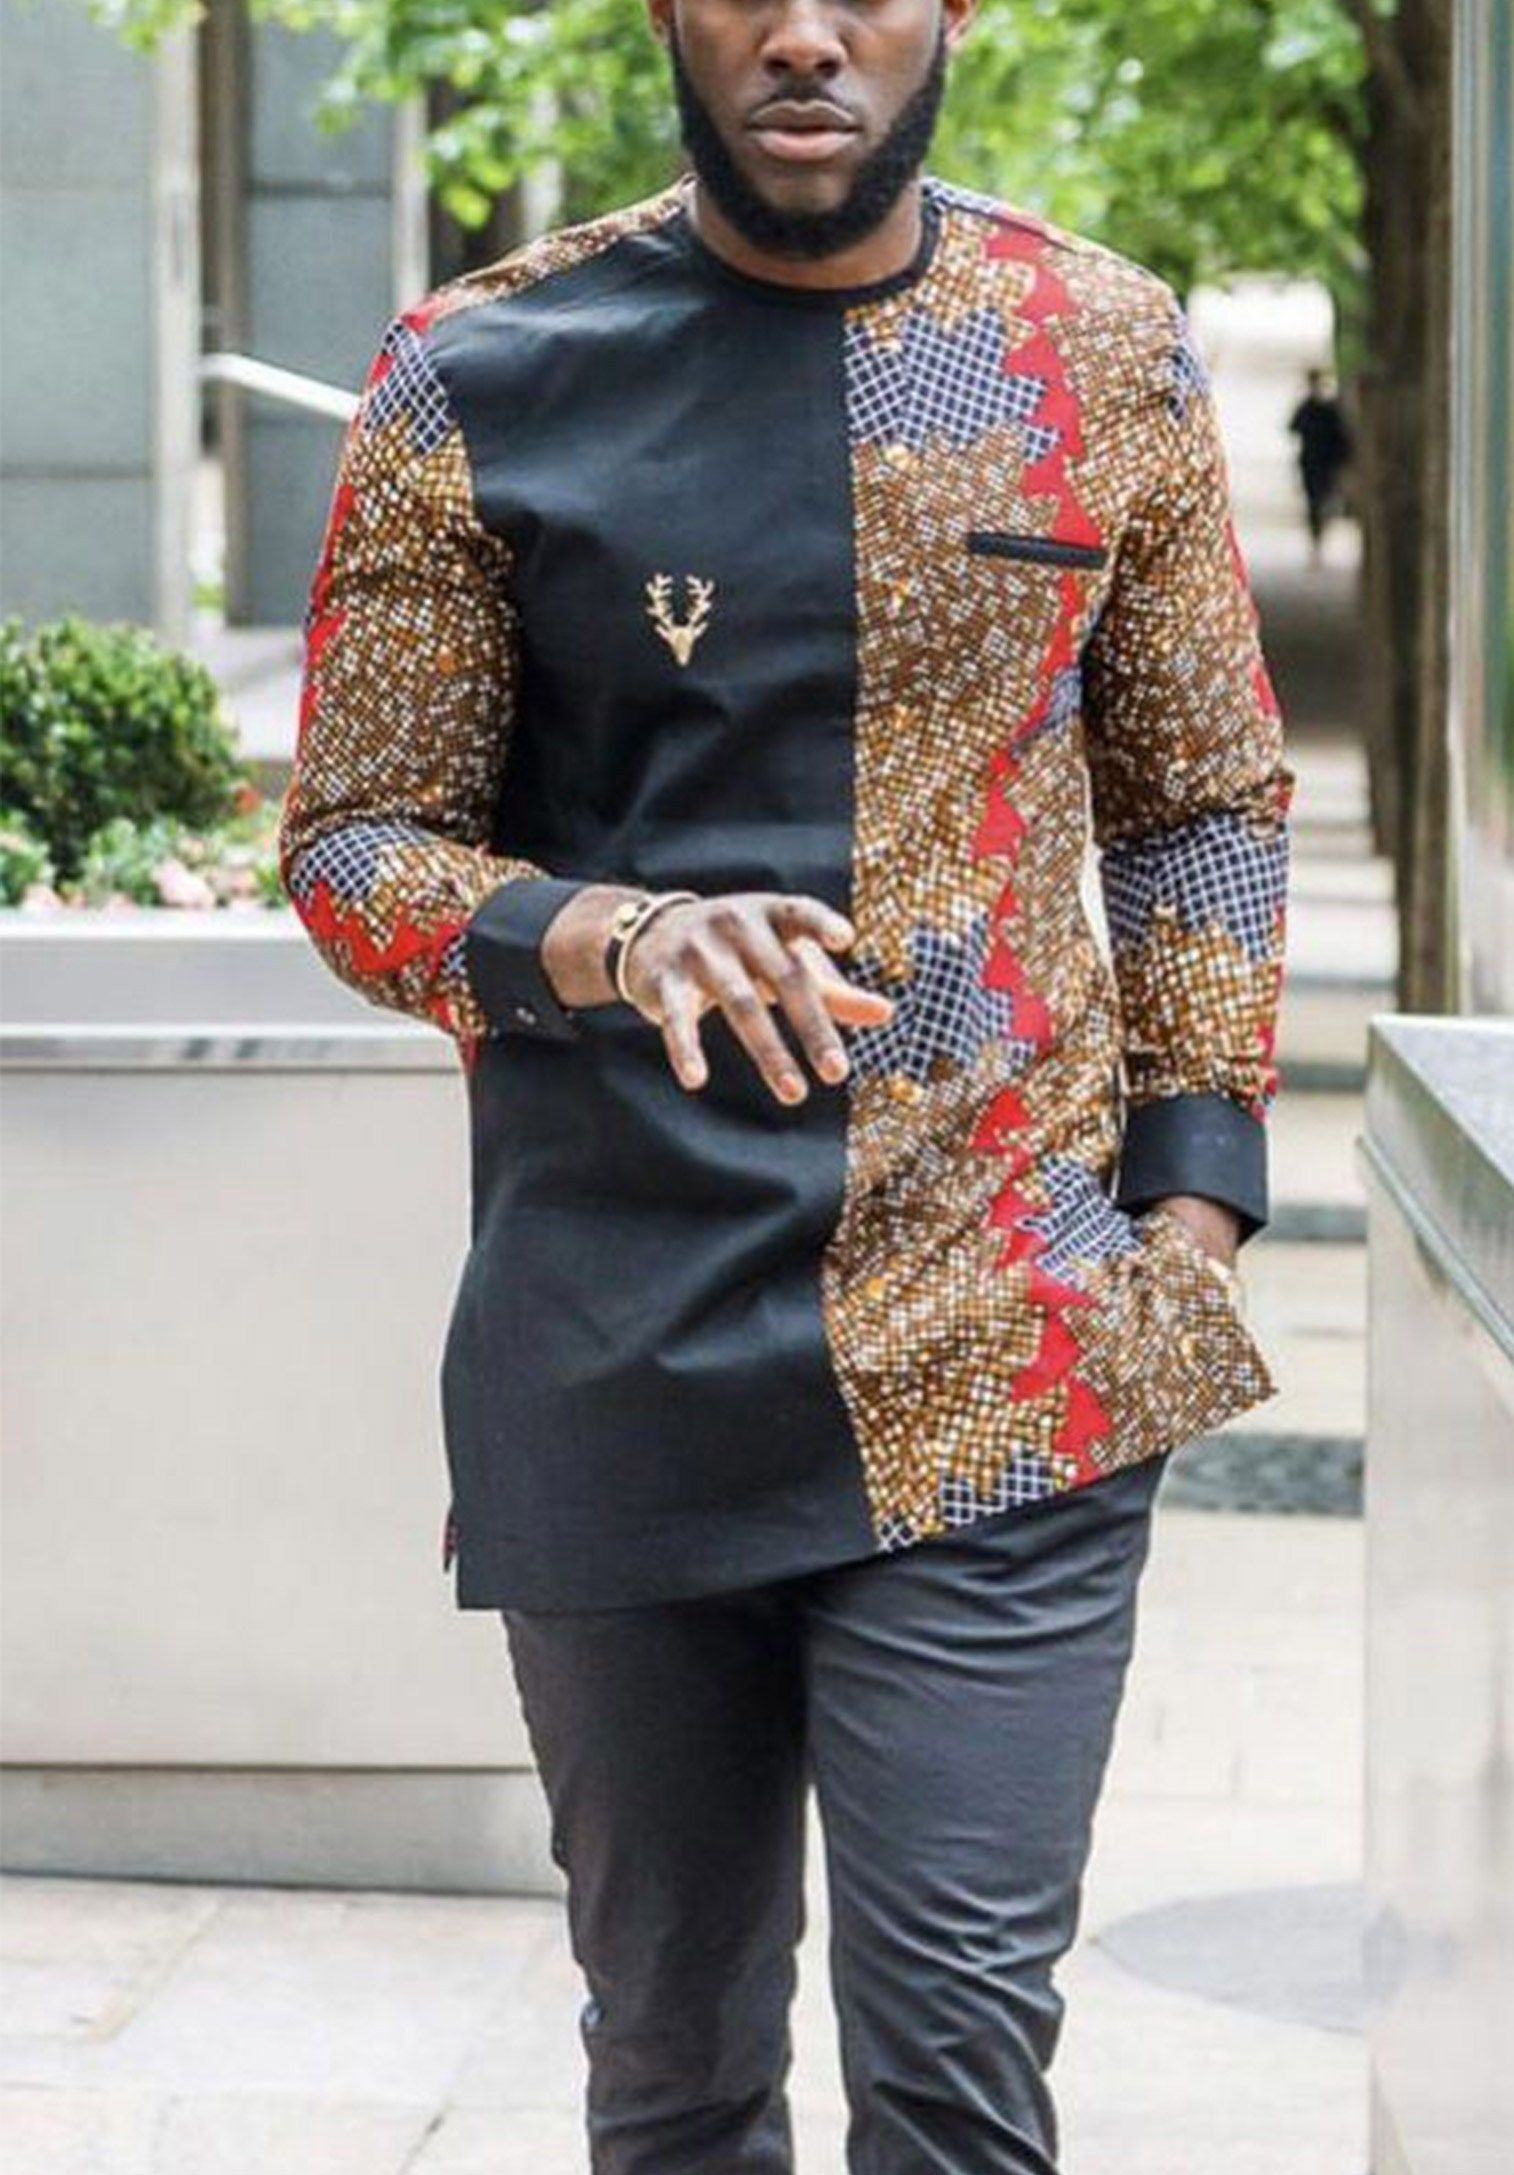 Top 20 African Shirts Design For Men 2019 In 2020 African Shirts Designs African Shirts African Men Fashion,Homemade Simple Easy Simple Cute Easy Mehndi Designs For Kids